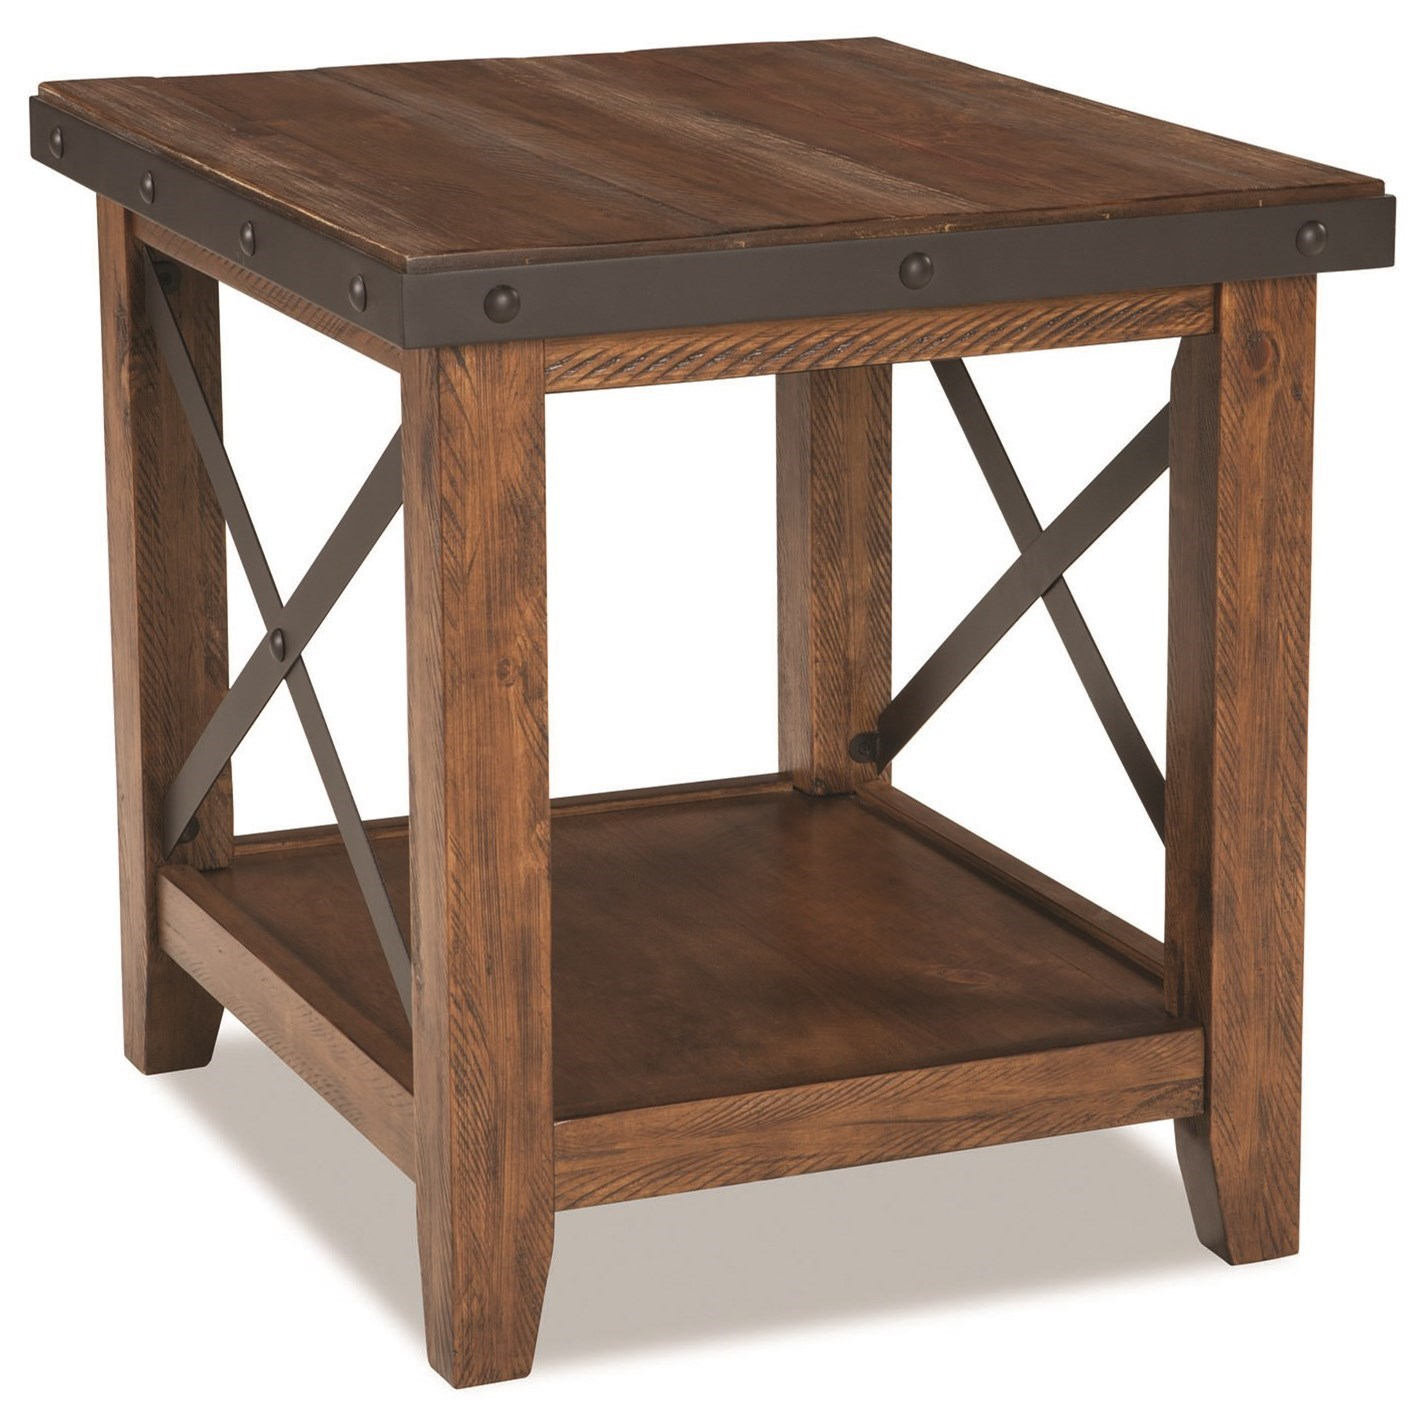 Taos End Table by Intercon at Fisher Home Furnishings